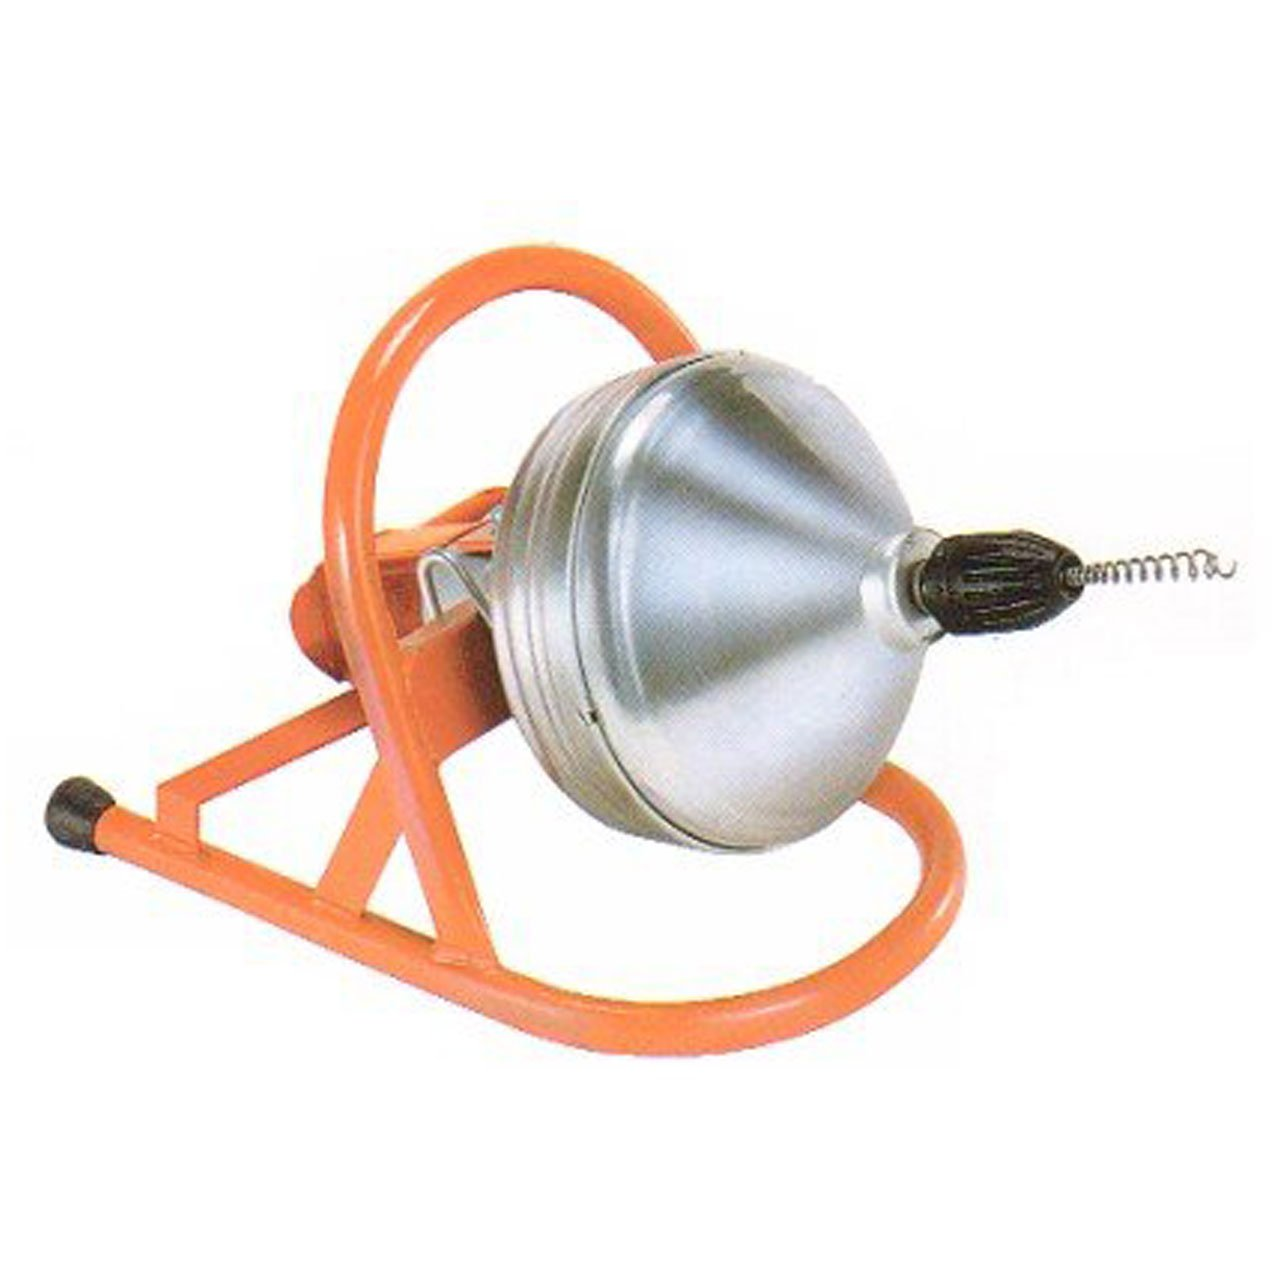 General Wire DR-F Drain-Rooter Basic Unit with 1/4'' x 25' Cable, Small by General Wire